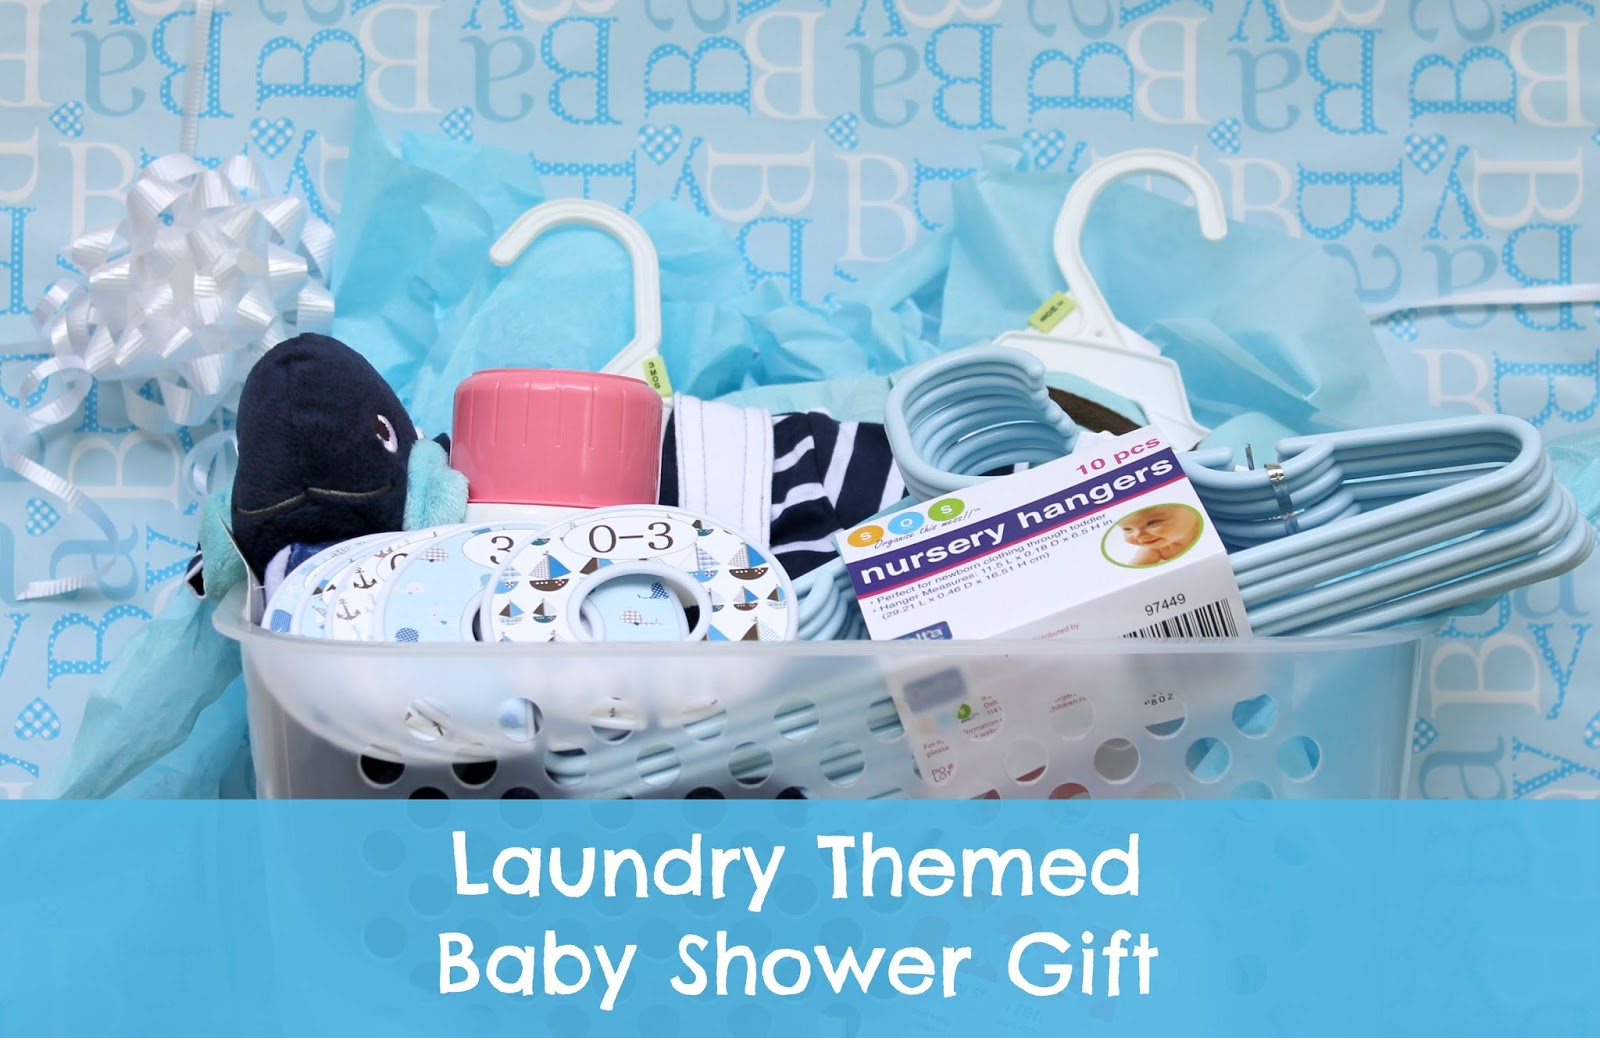 Laundry Themed Baby Shower Gift Basket The Inspired Hive